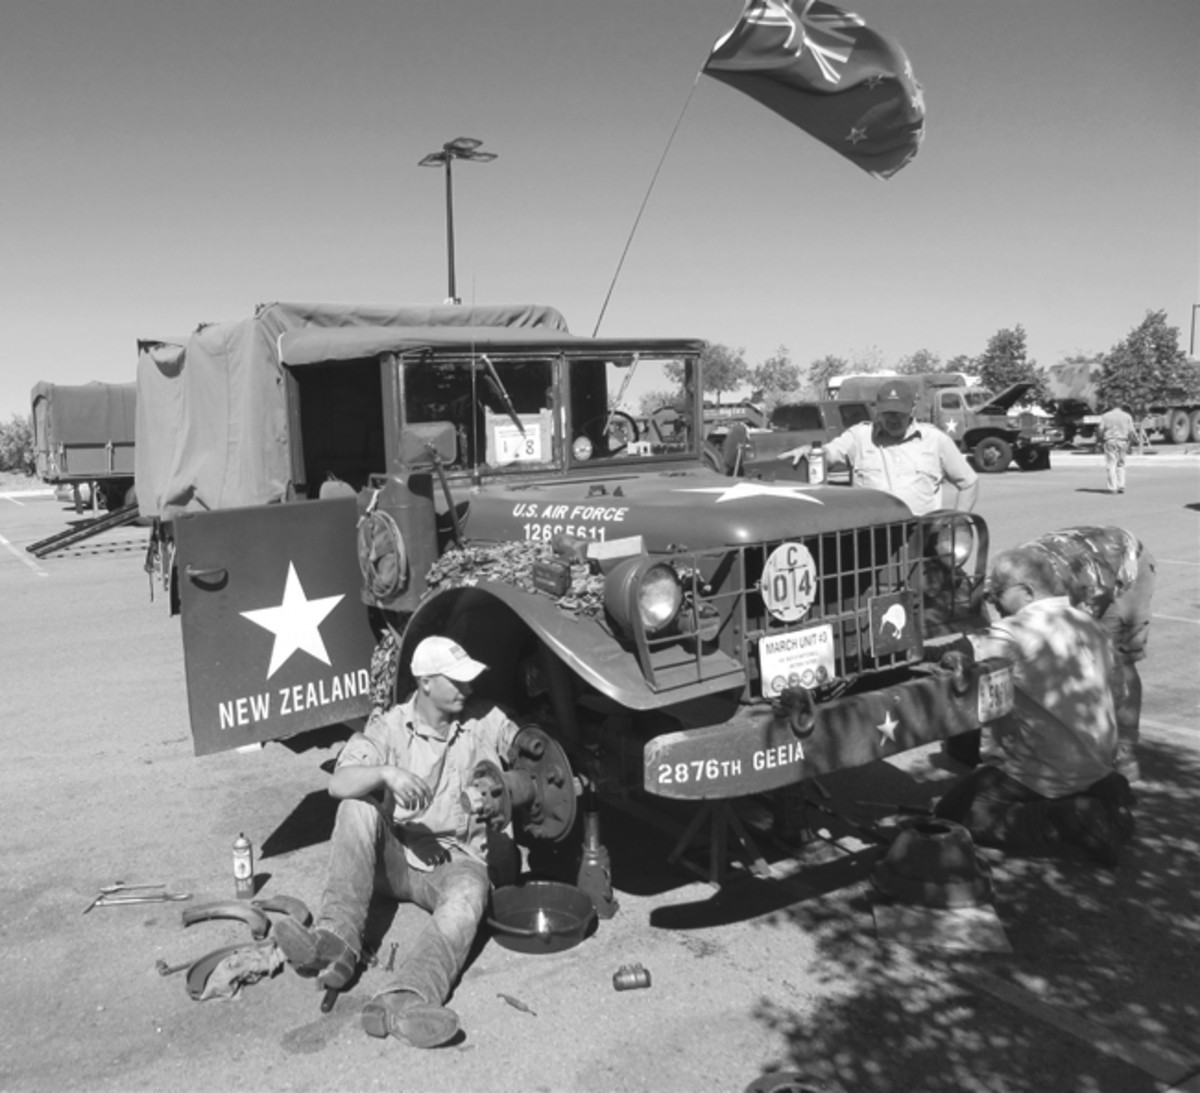 The attempt to find a shady spot to do a brake job on the New Zealander's M37 in Santa Fe Walmart parking lot was not very successful. HMVs in the background are undergoing PM motor stables on the Convoy's rest day. Mark Sigrist